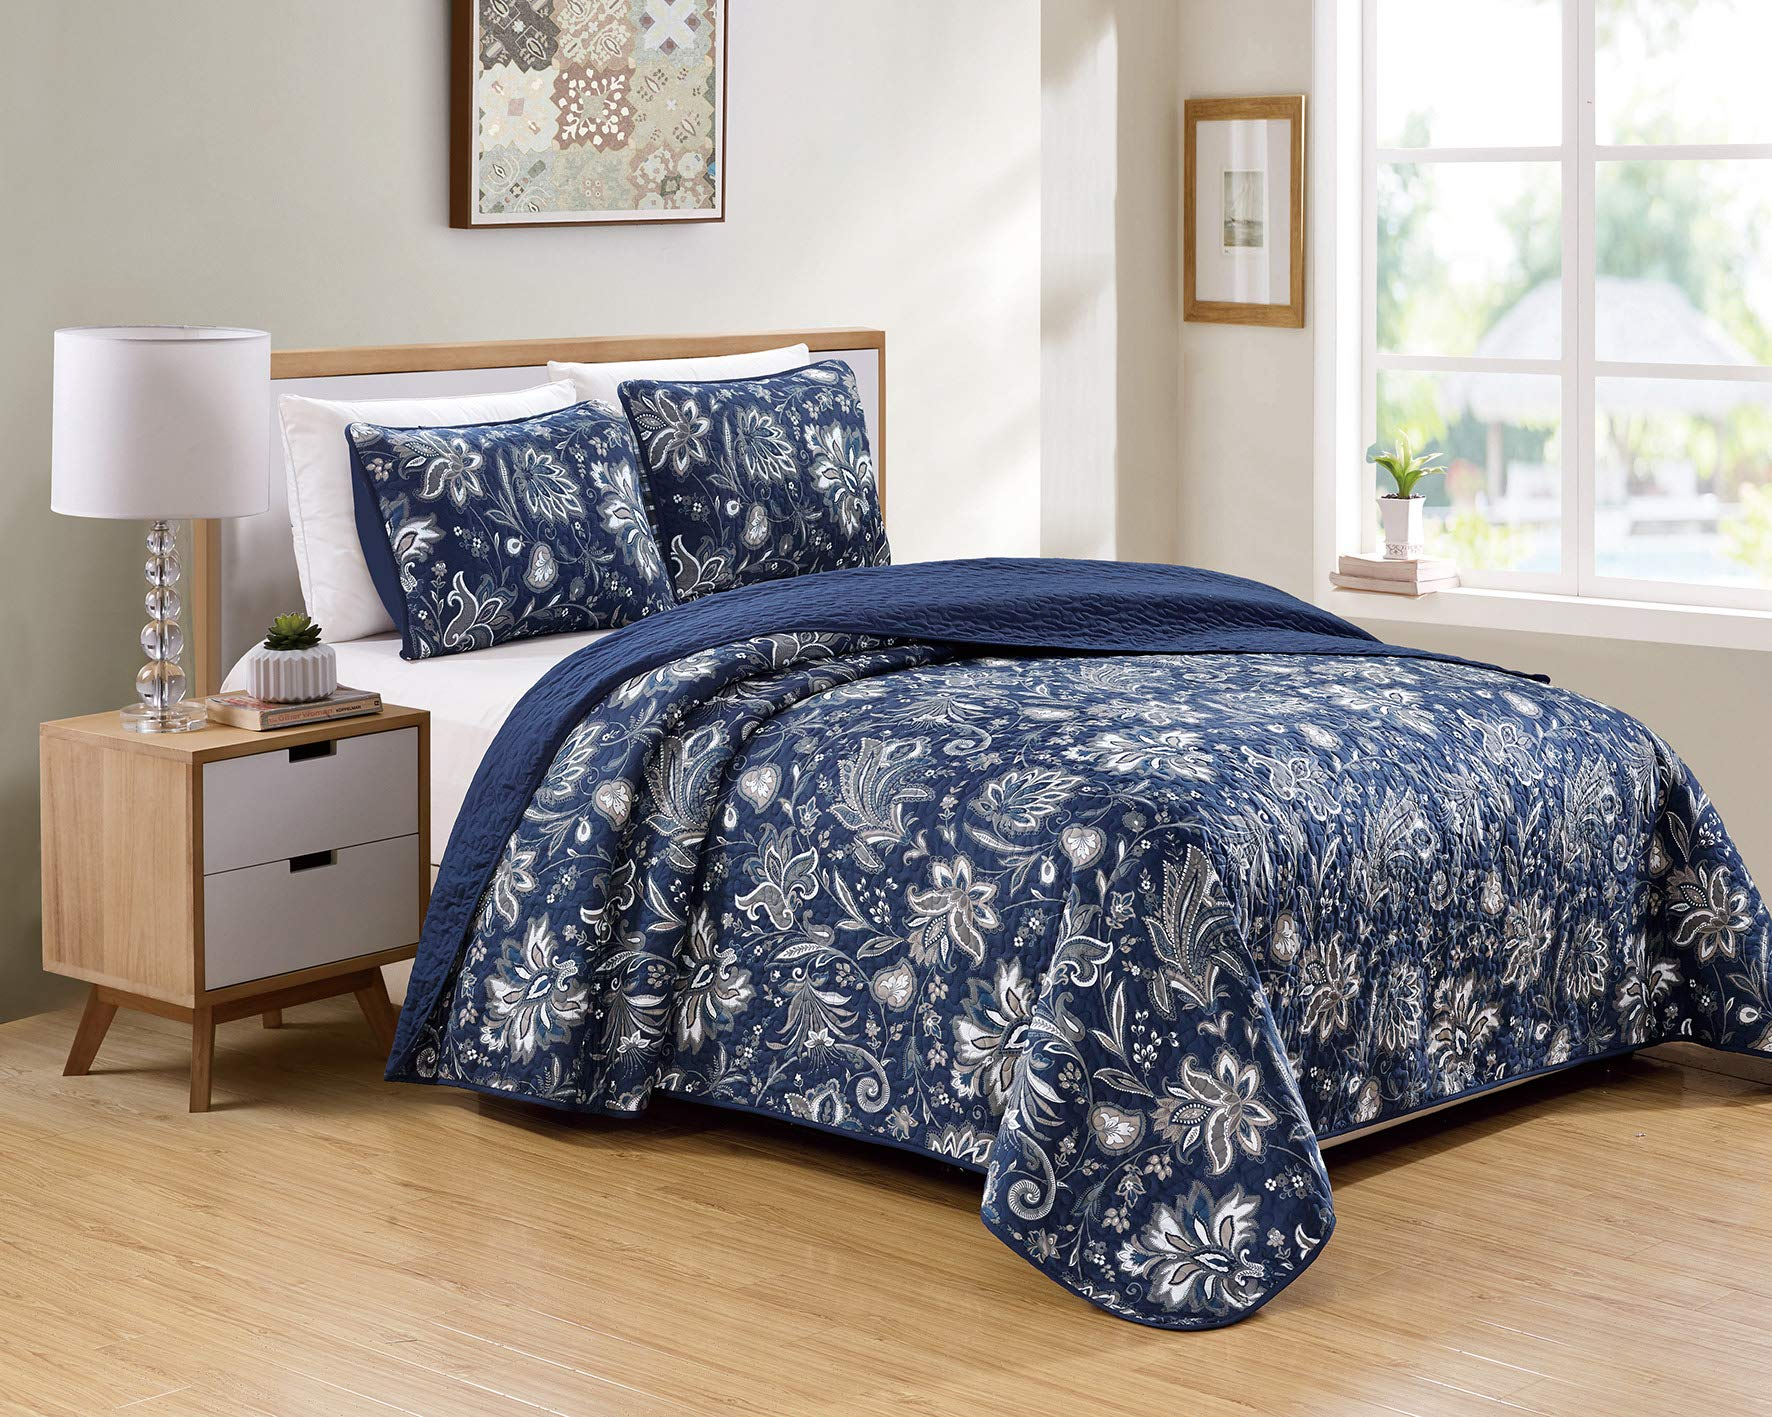 Kids Zone Home Linen 3 Piece King/Cal King Over Size Bedspread Set Floral Print Pattern Blue Taupe White Grey by Kids Zone Home Linen